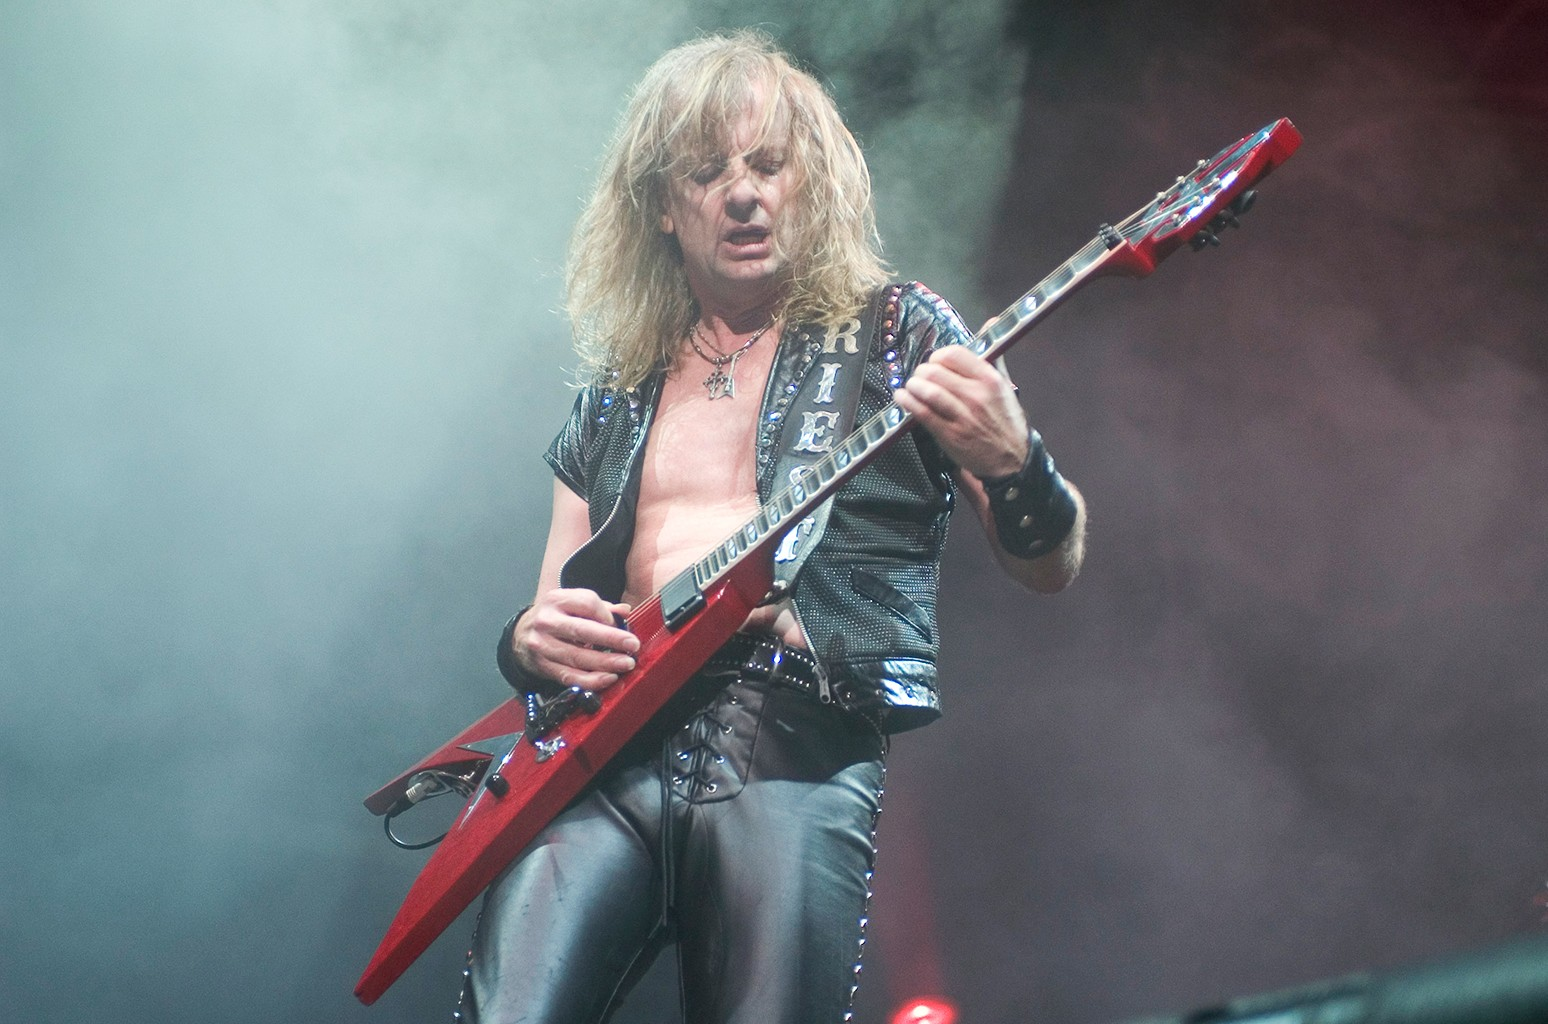 KK Downing of Judas Priest perform onstage at the Tweeter Center in Chicago on Aug. 21, 2004.